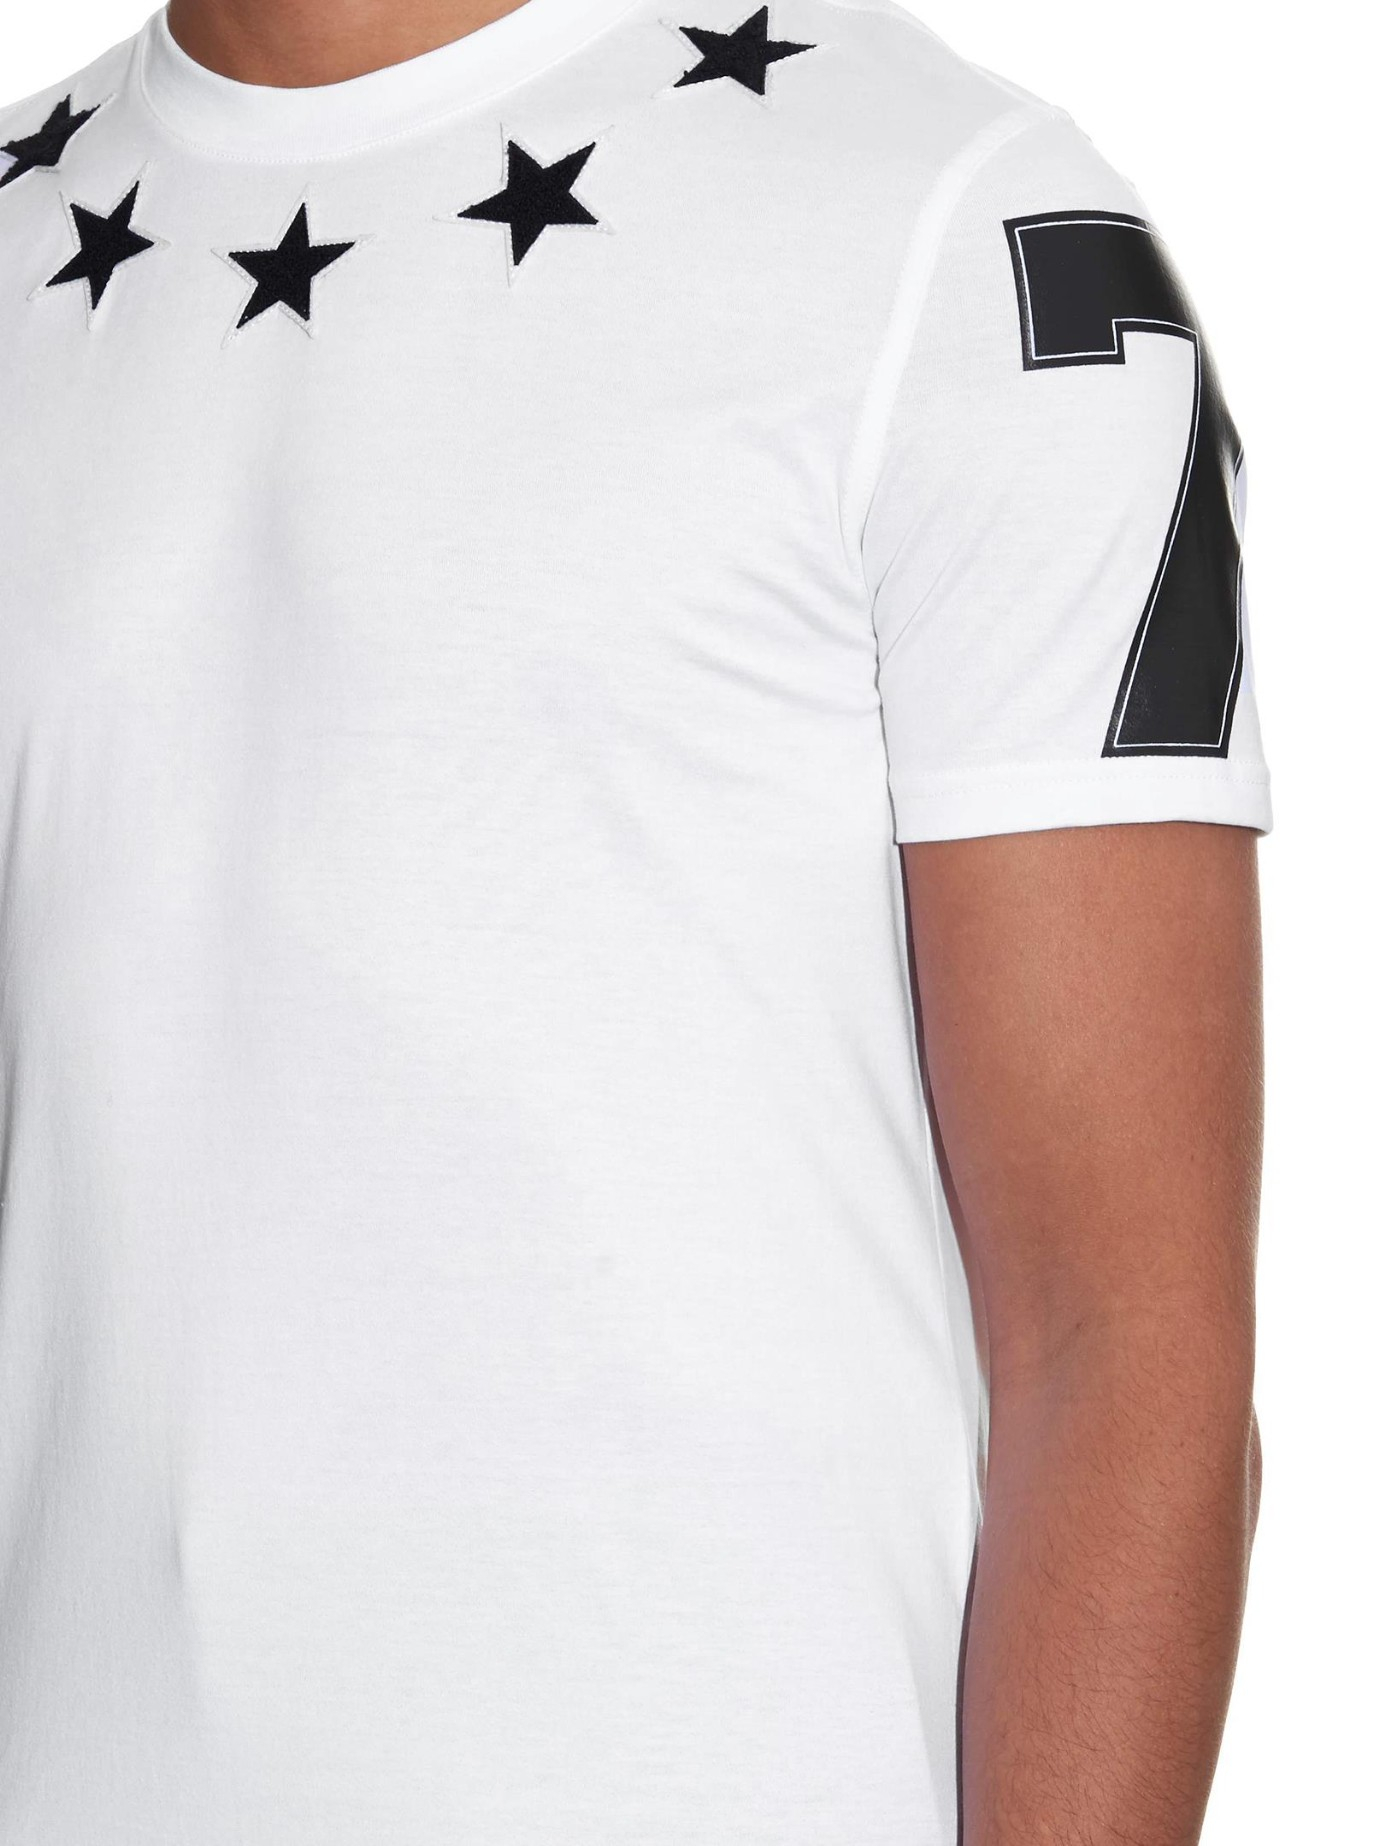 Lyst Givenchy Cuban Fit Fleece Stars T Shirt In White